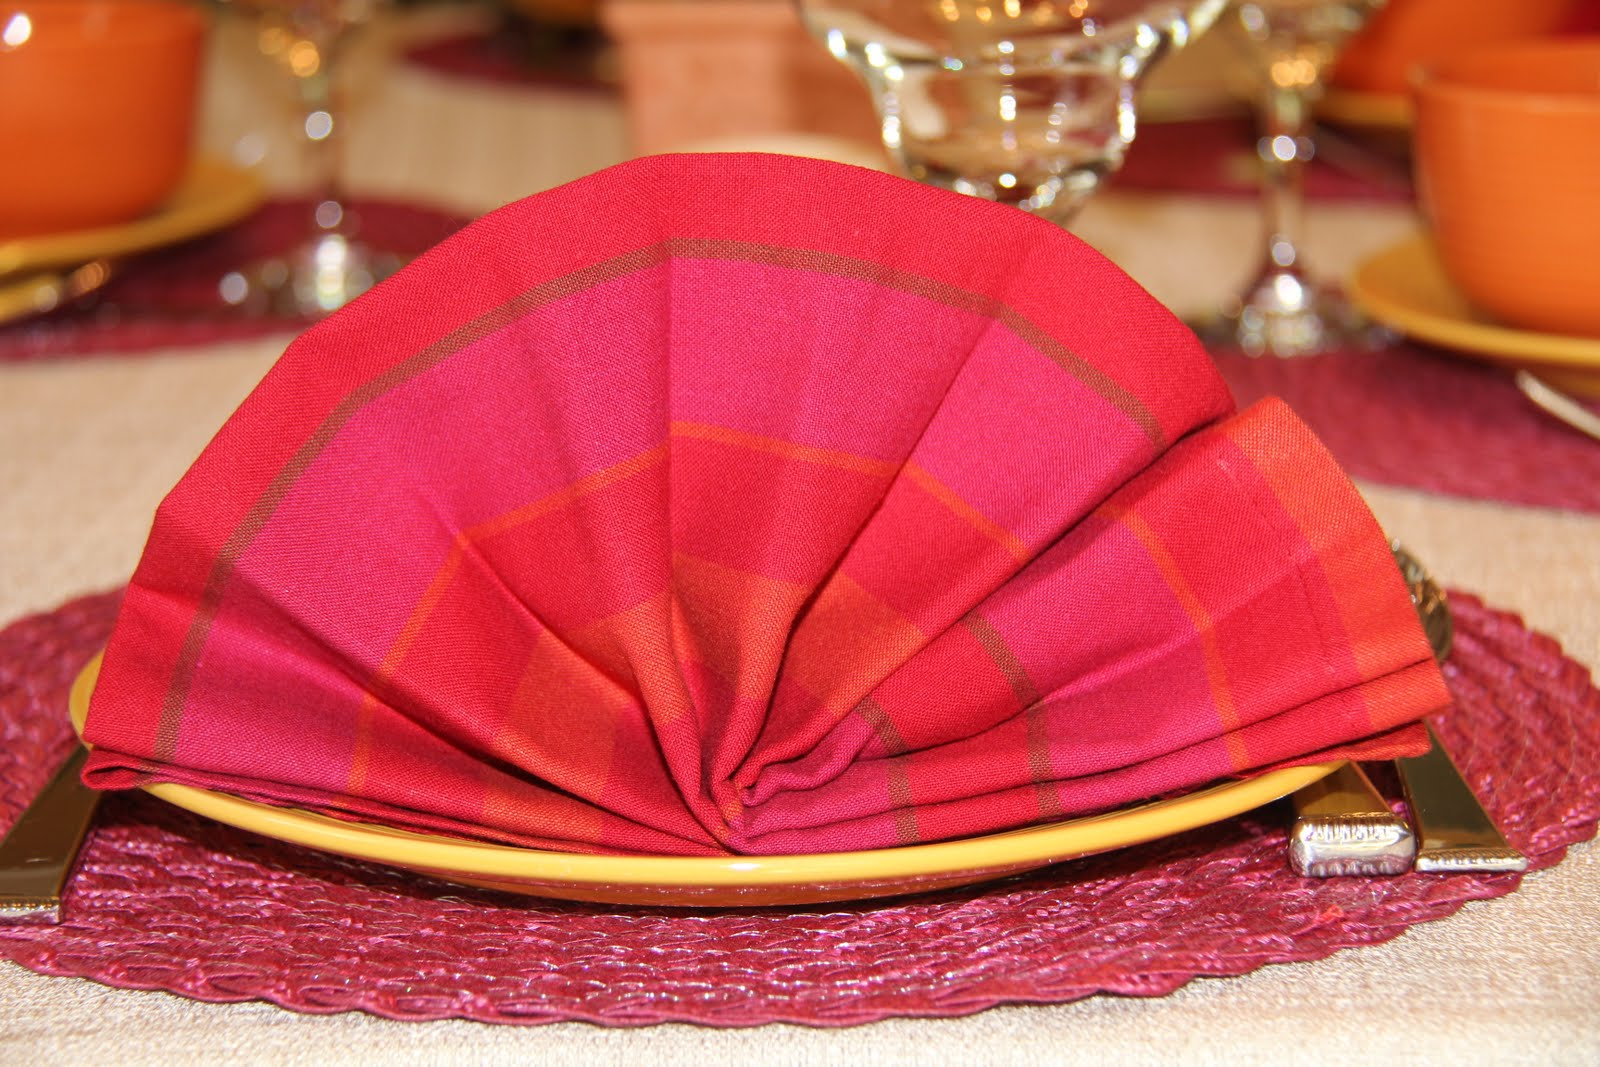 Folding Dinner Table picture on mexican fan how to fancy napkin folding with Folding Dinner Table, Folding Table 8b32a86e6b2dacff376c30cf32be0fc7